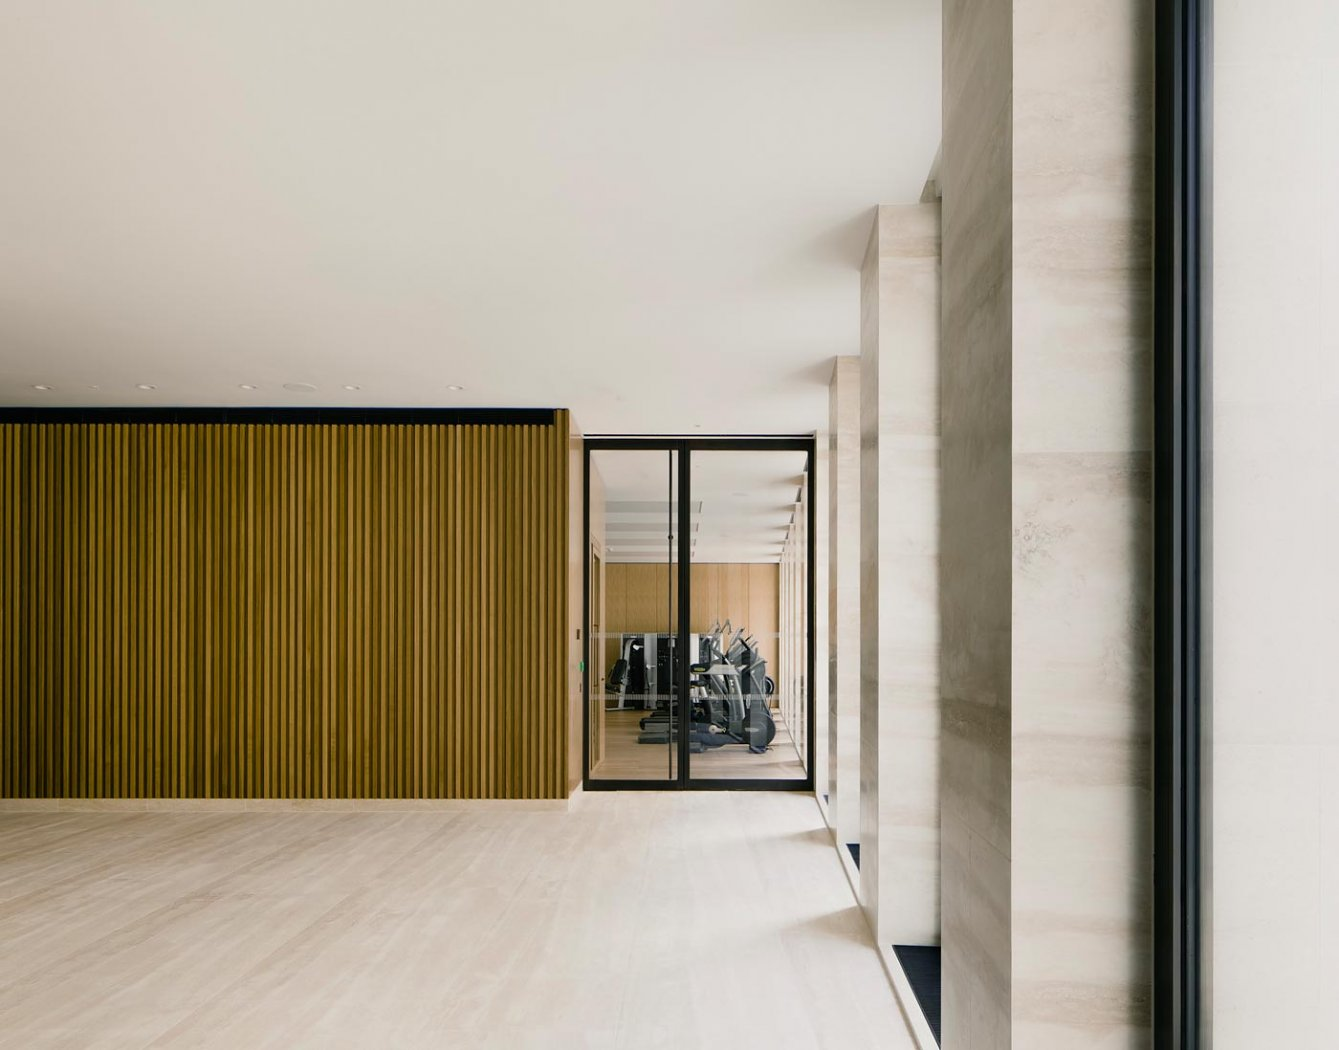 David chipperfield architects one kensington gardens for Chipperfield arquitecto